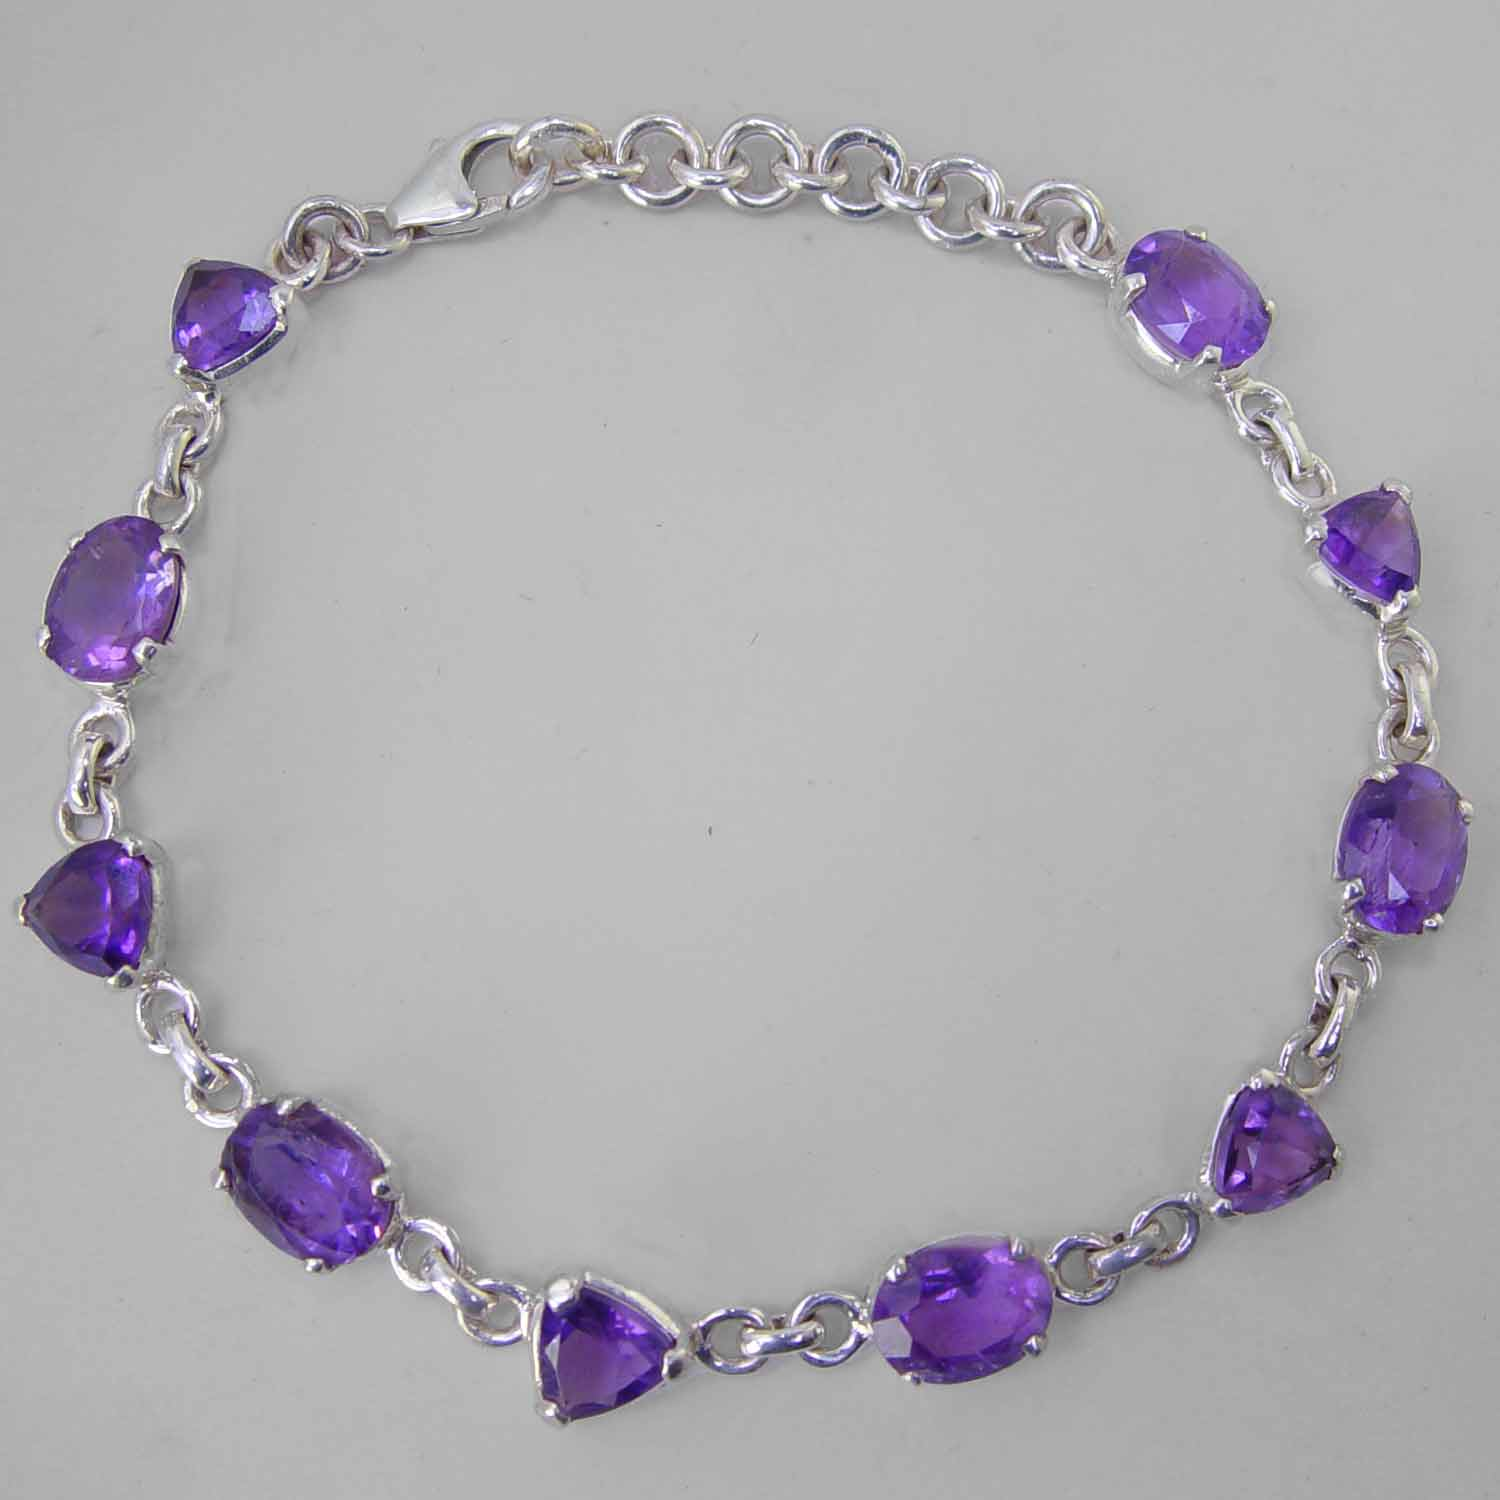 Amethyst Faceted Trillion Cut and Oval Sterling Silver Link Bracelet - 6 CTW